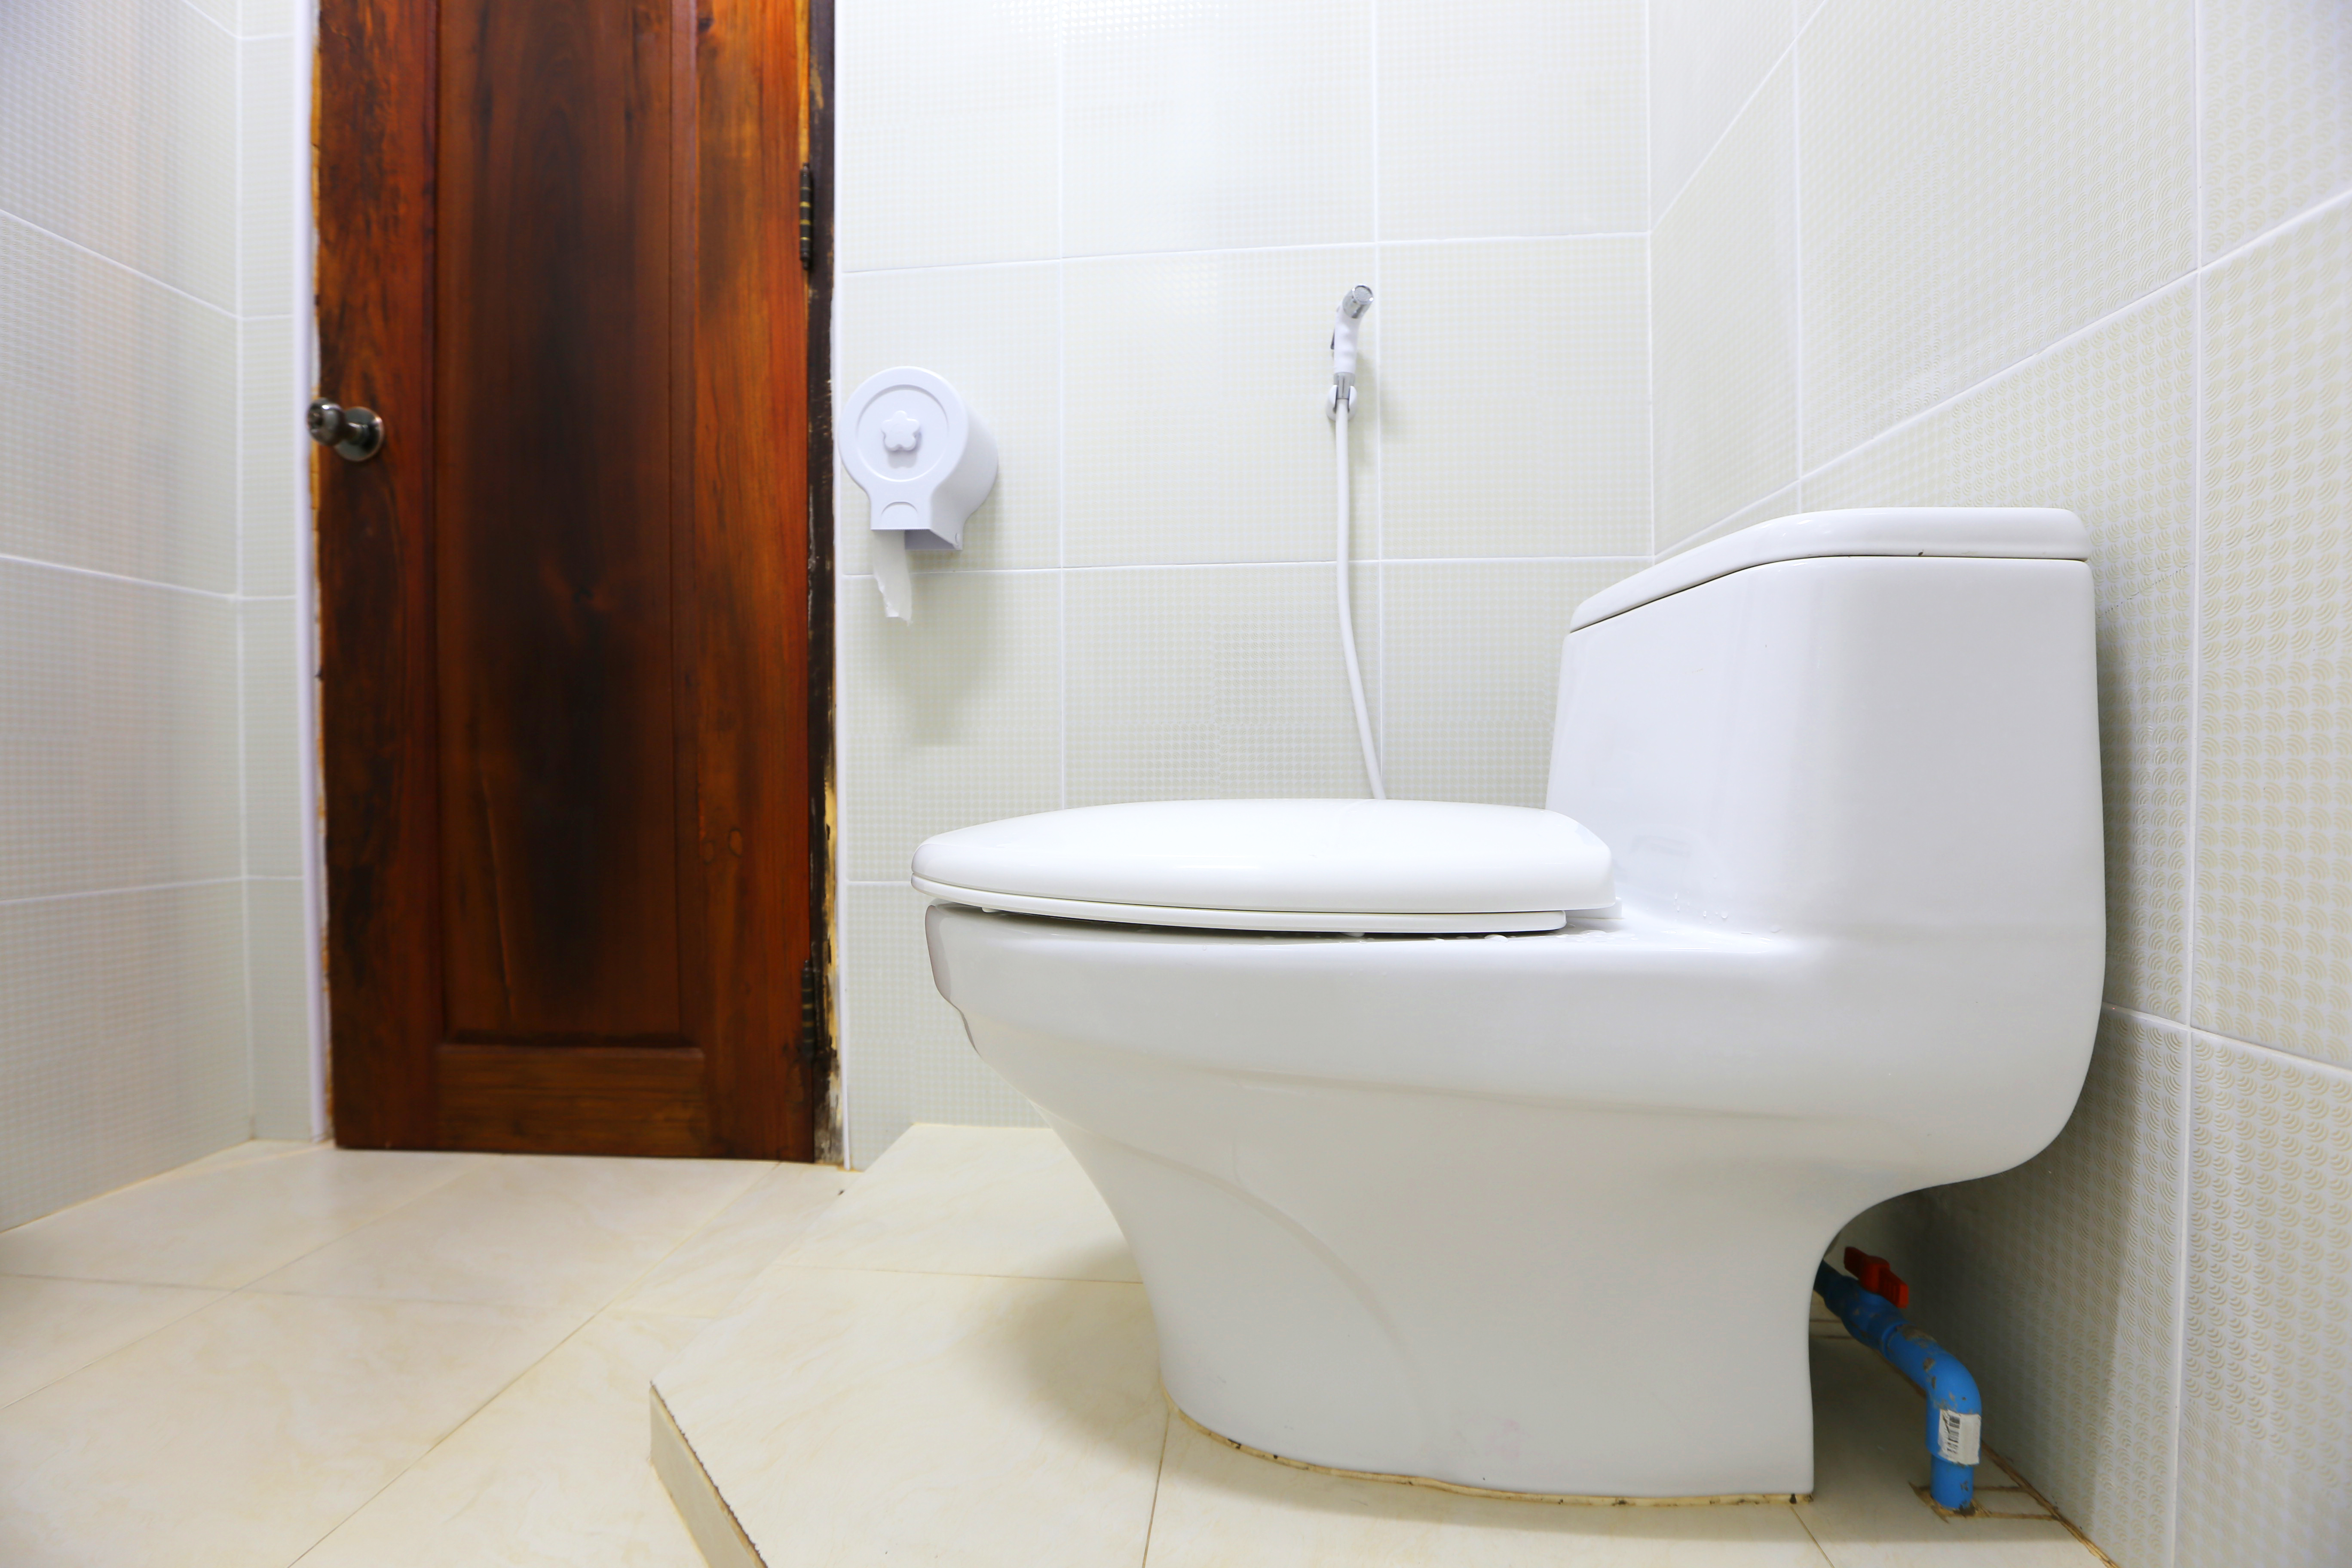 Remarkable How To Repair Toilet Handles That Stick Home Guides Sf Gate Theyellowbook Wood Chair Design Ideas Theyellowbookinfo